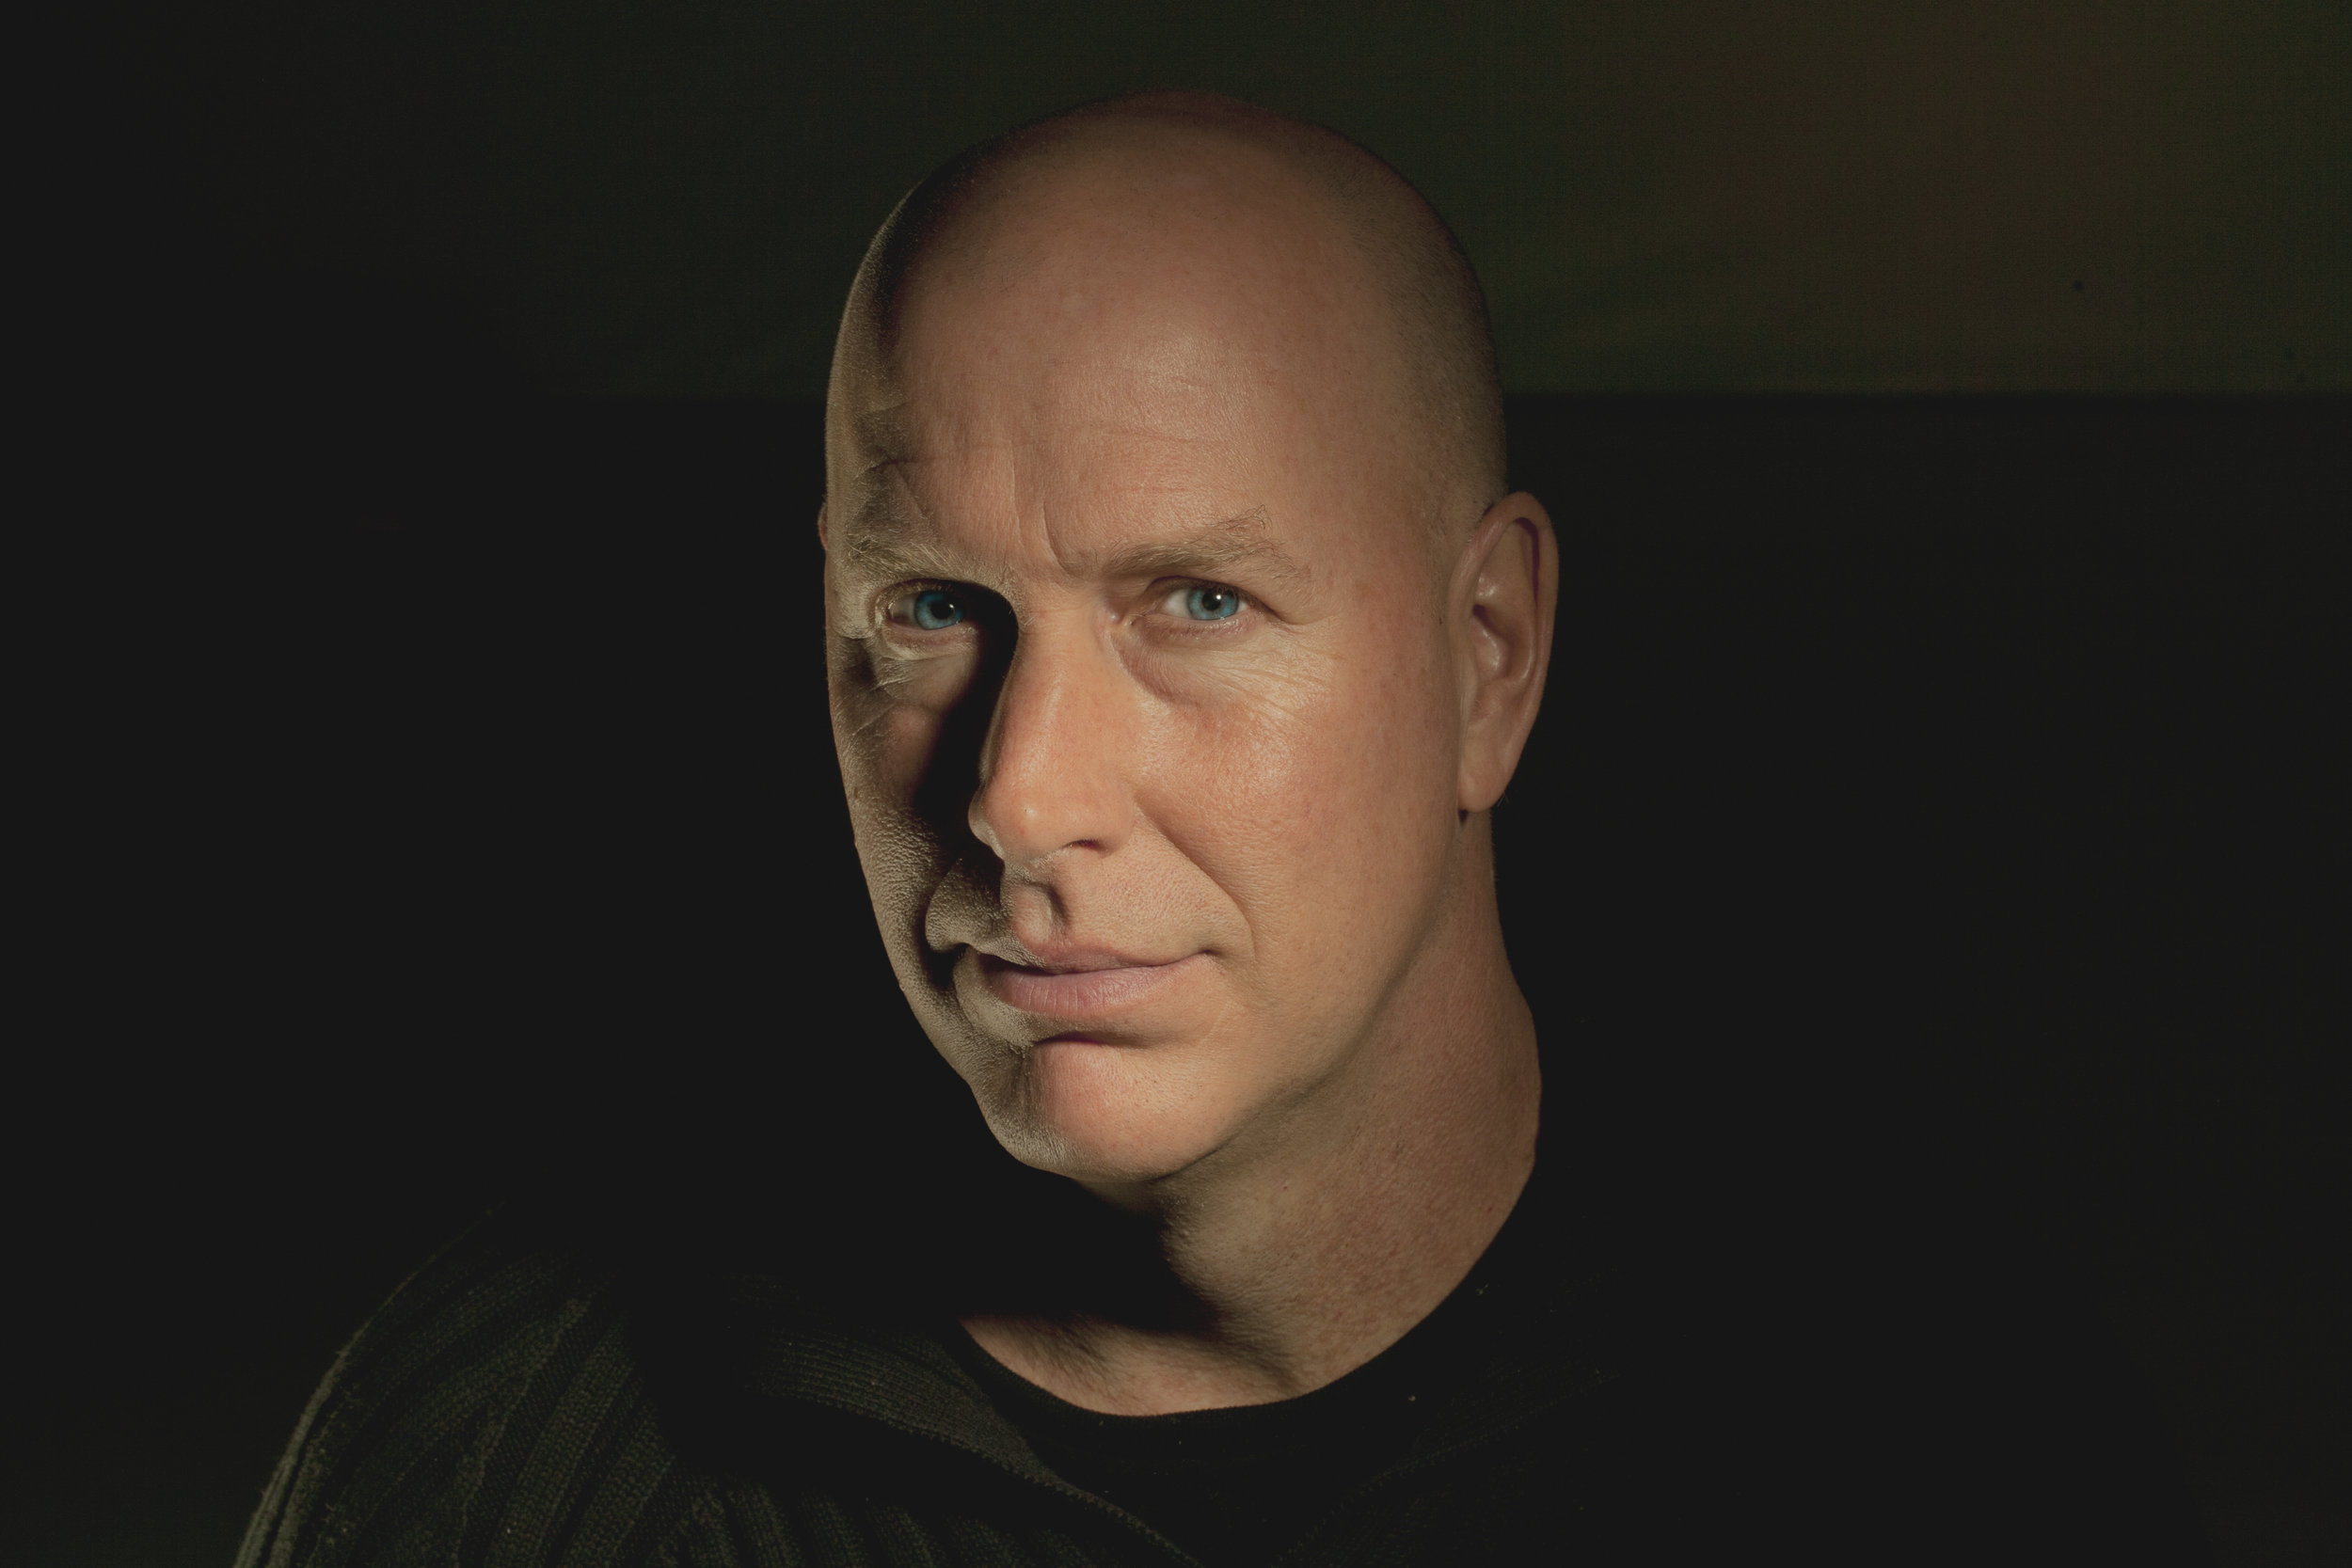 Bennett, Stephen head shot 2014.jpg